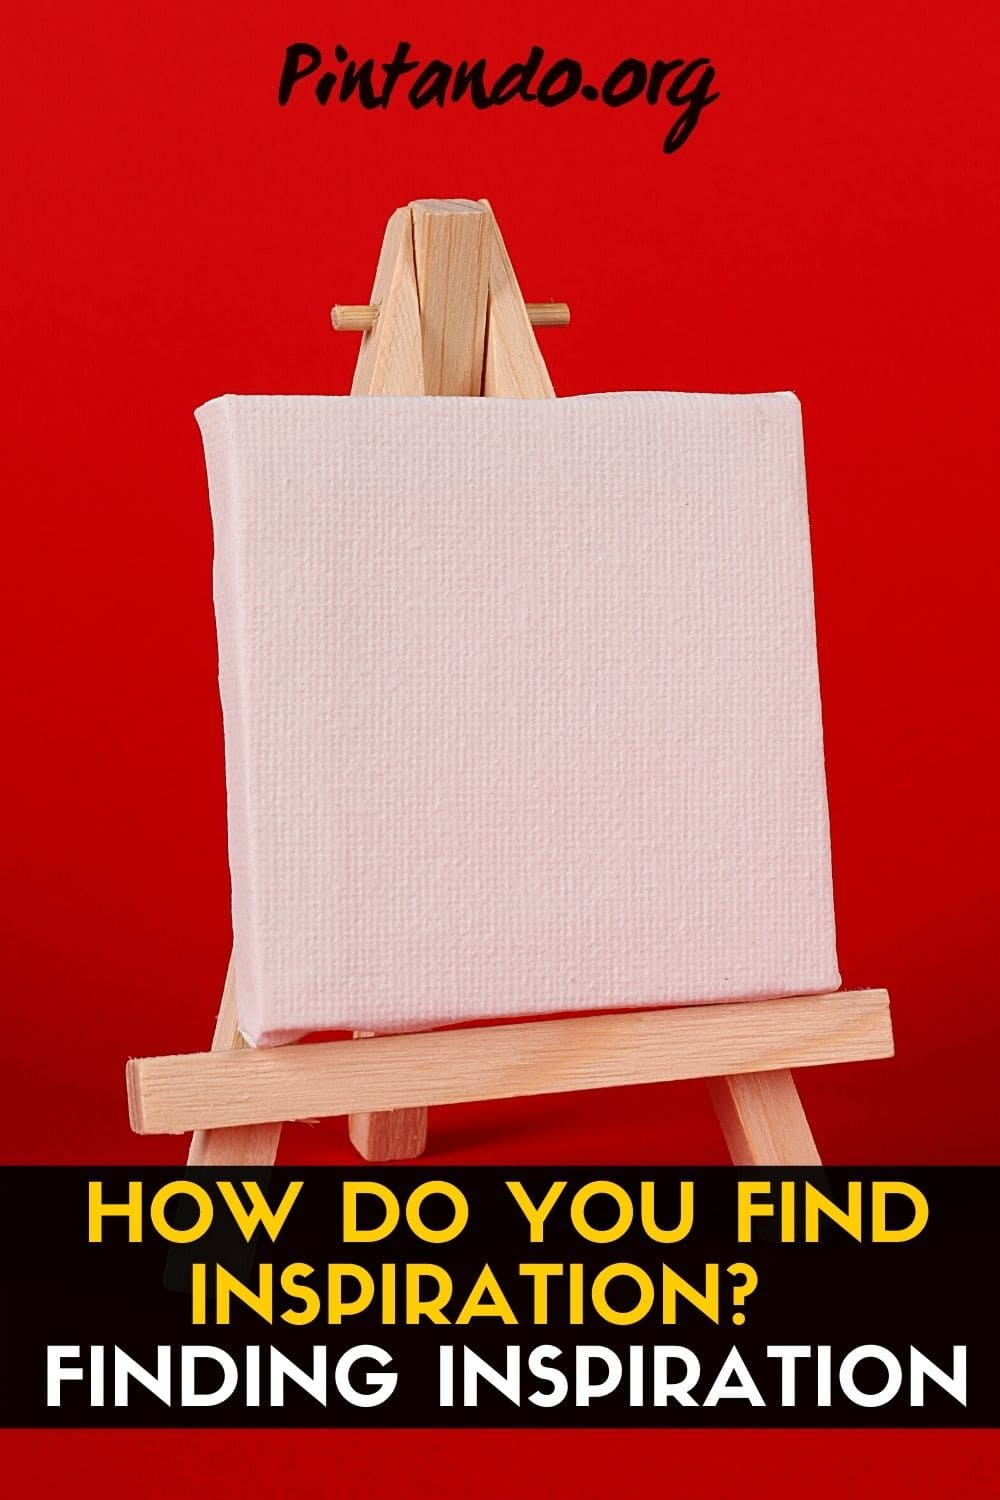 HOW-DO-YOU-FIND-INSPIRATION_-FINDING-INSPIRATION-2-min.jpg